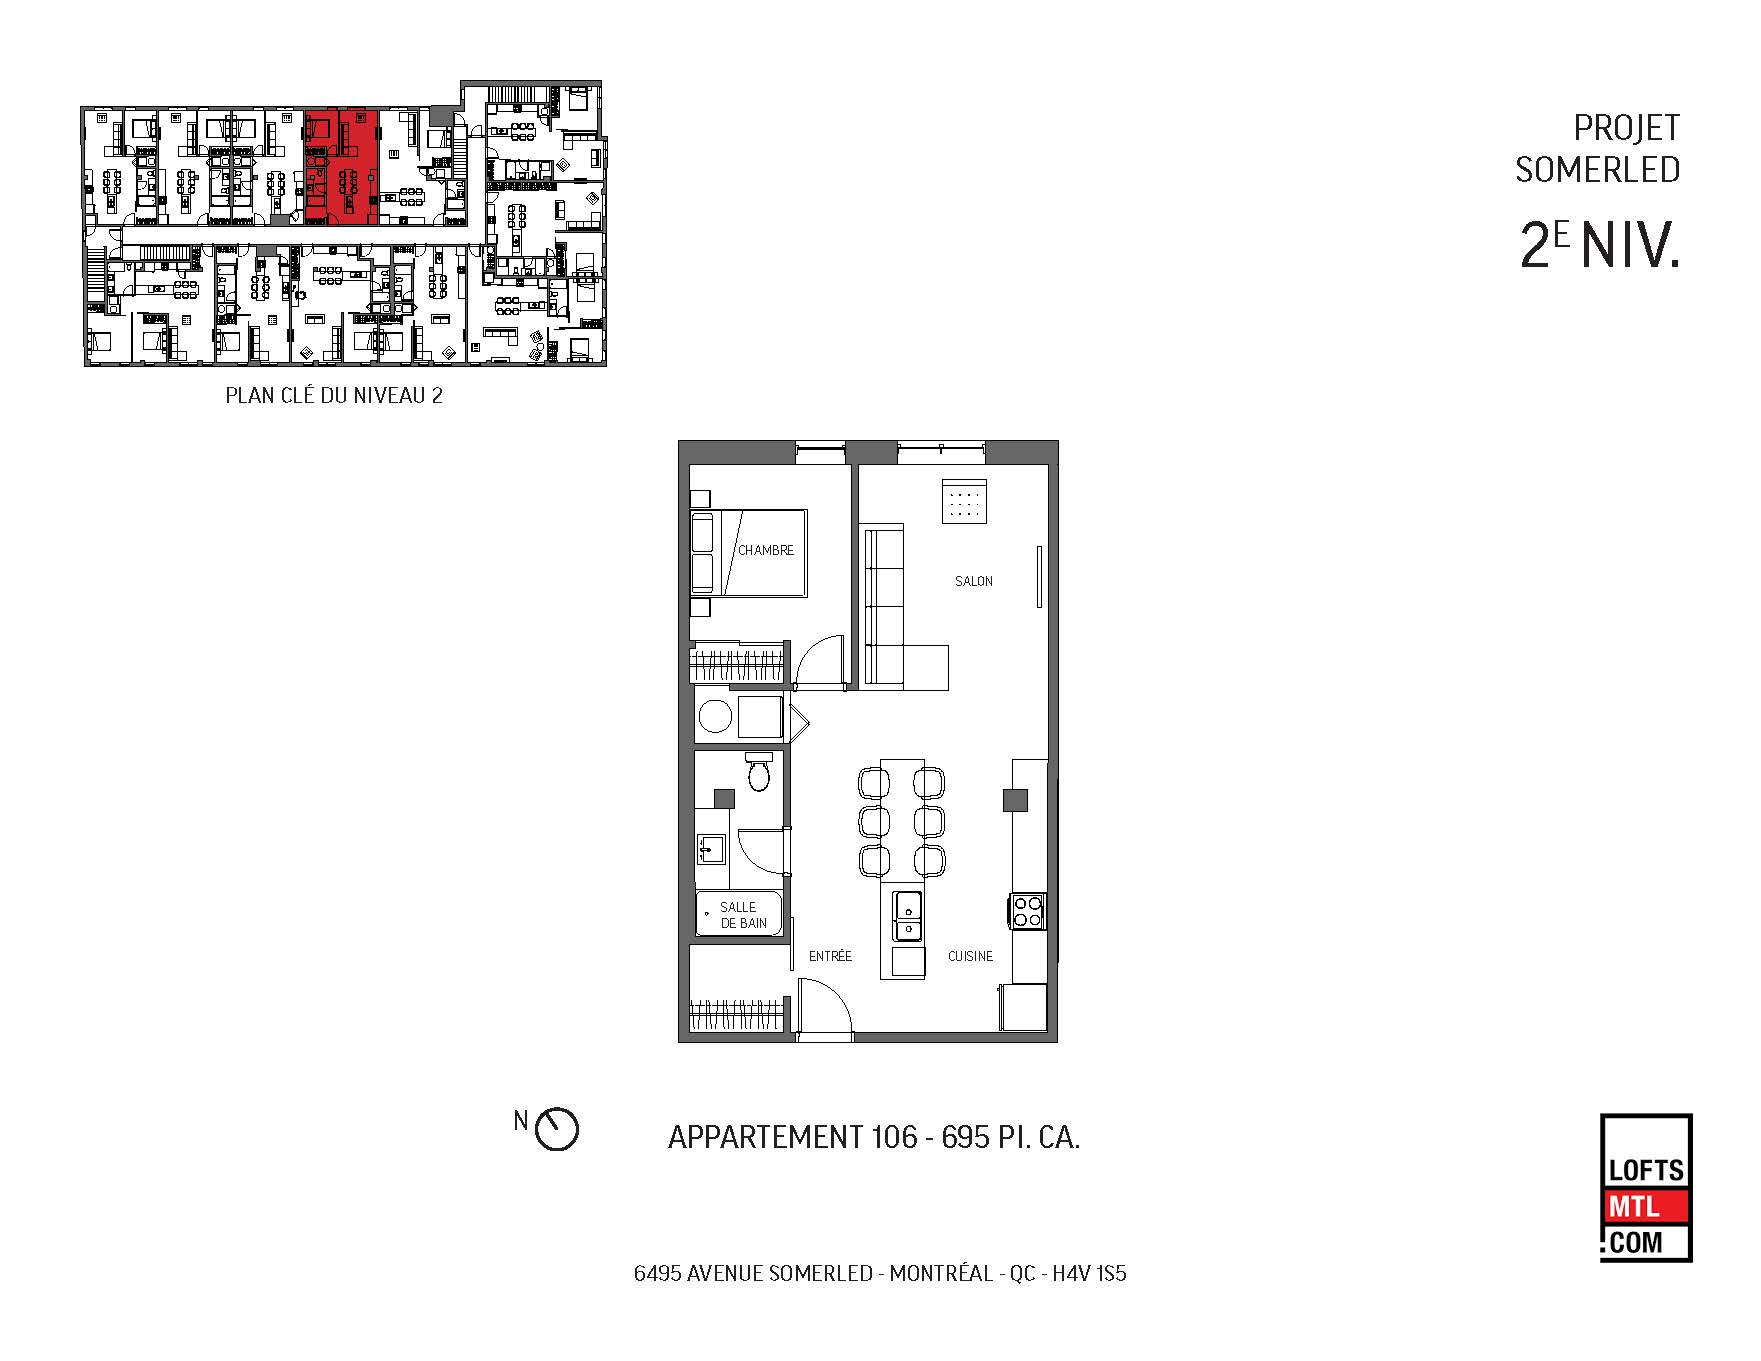 Plans appartements vectoriel Somerled_Page_06.jpg